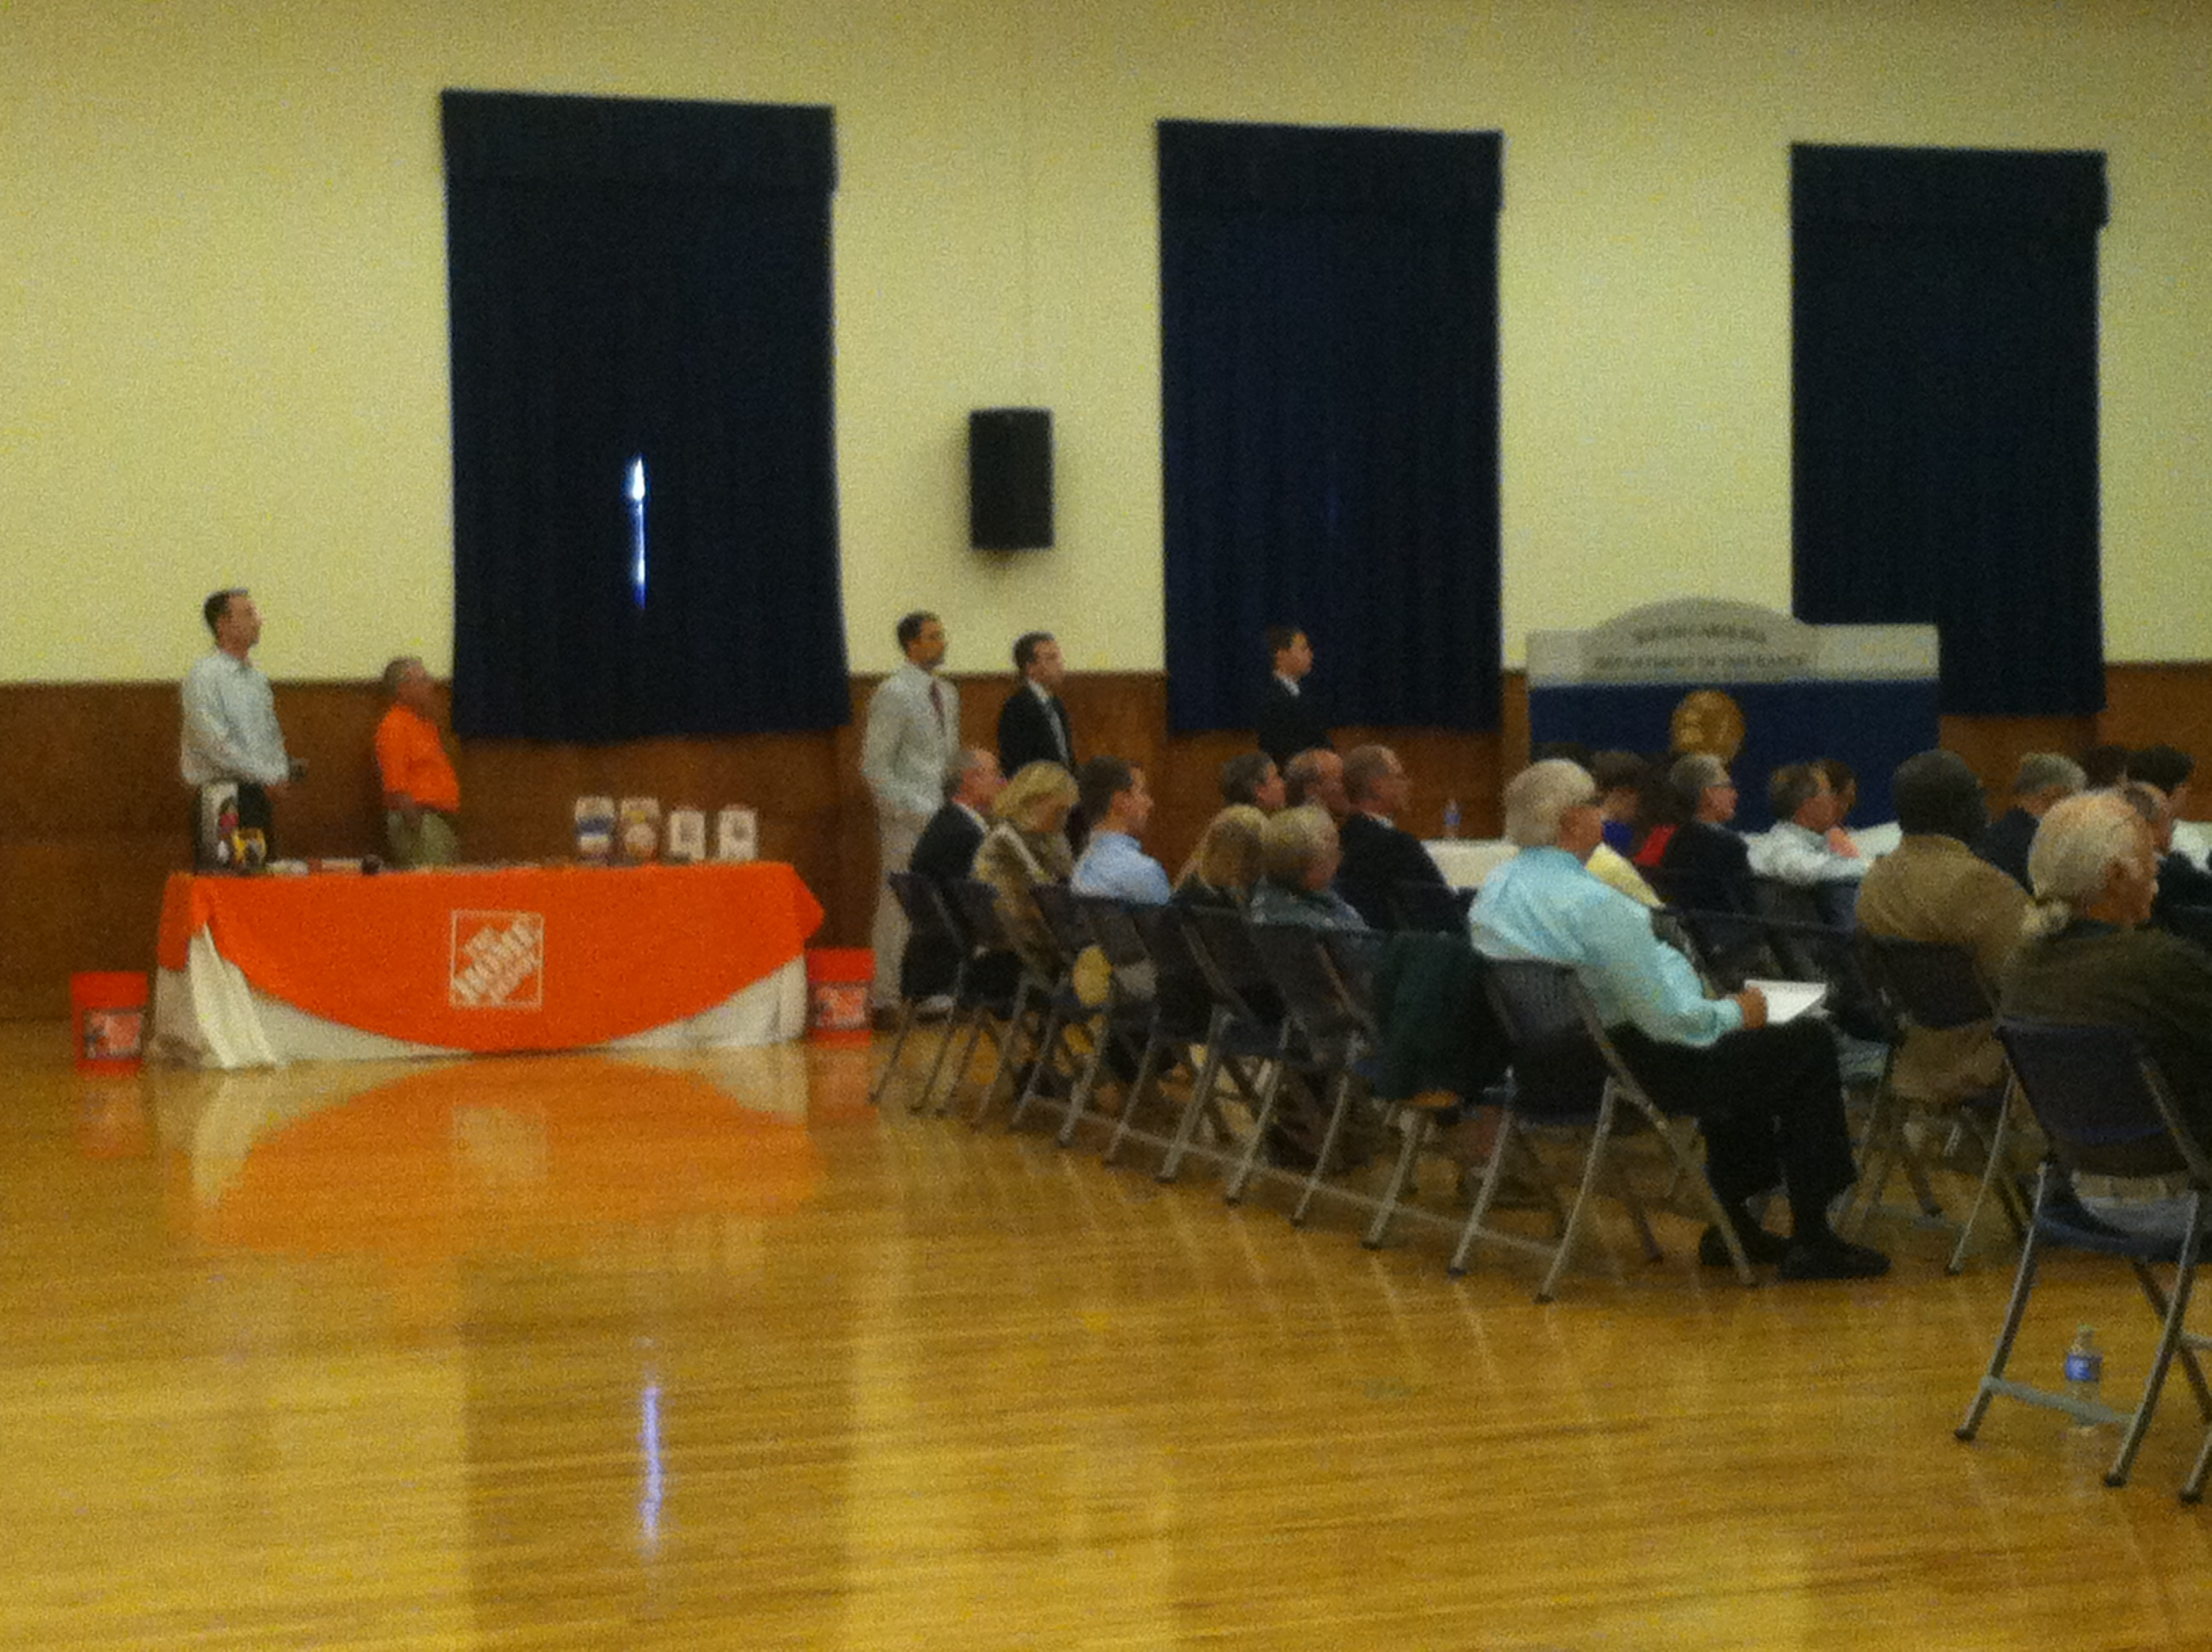 Attendees of the public hearing and Home Depot's table